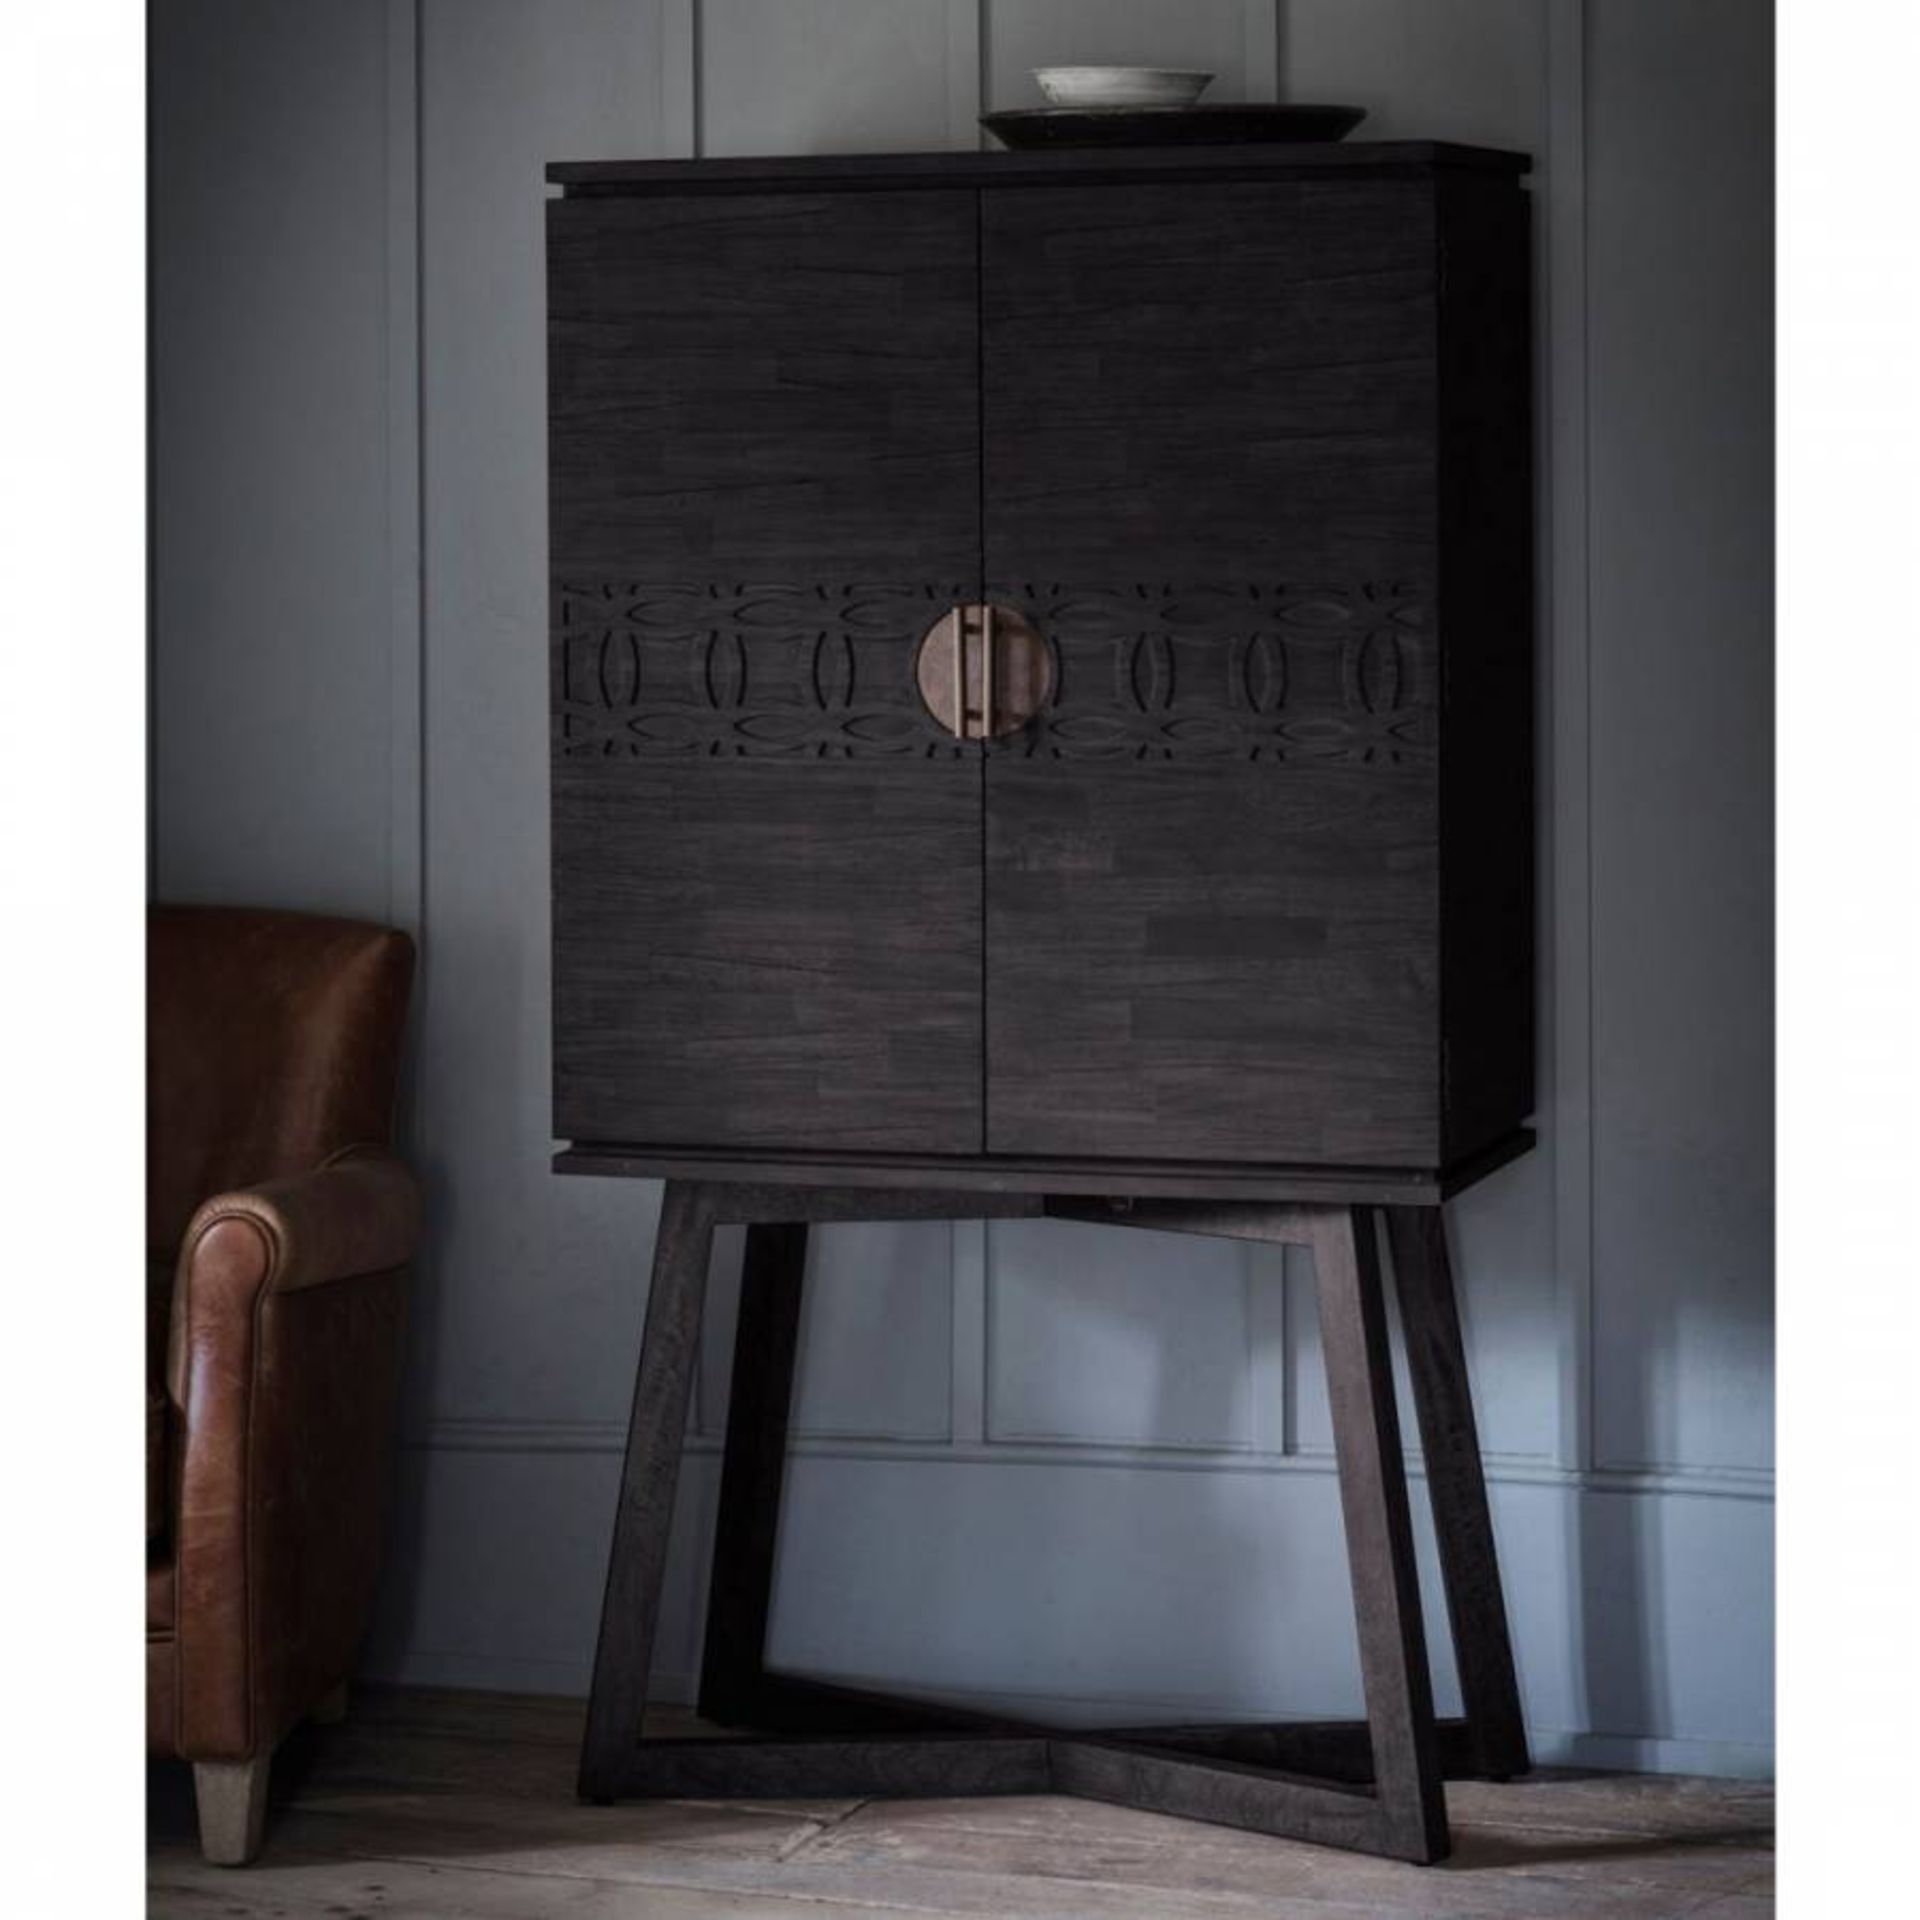 Boho Boutique Cocktail Cabinet is made using Mango solids with mixed timber veneers of Teak-